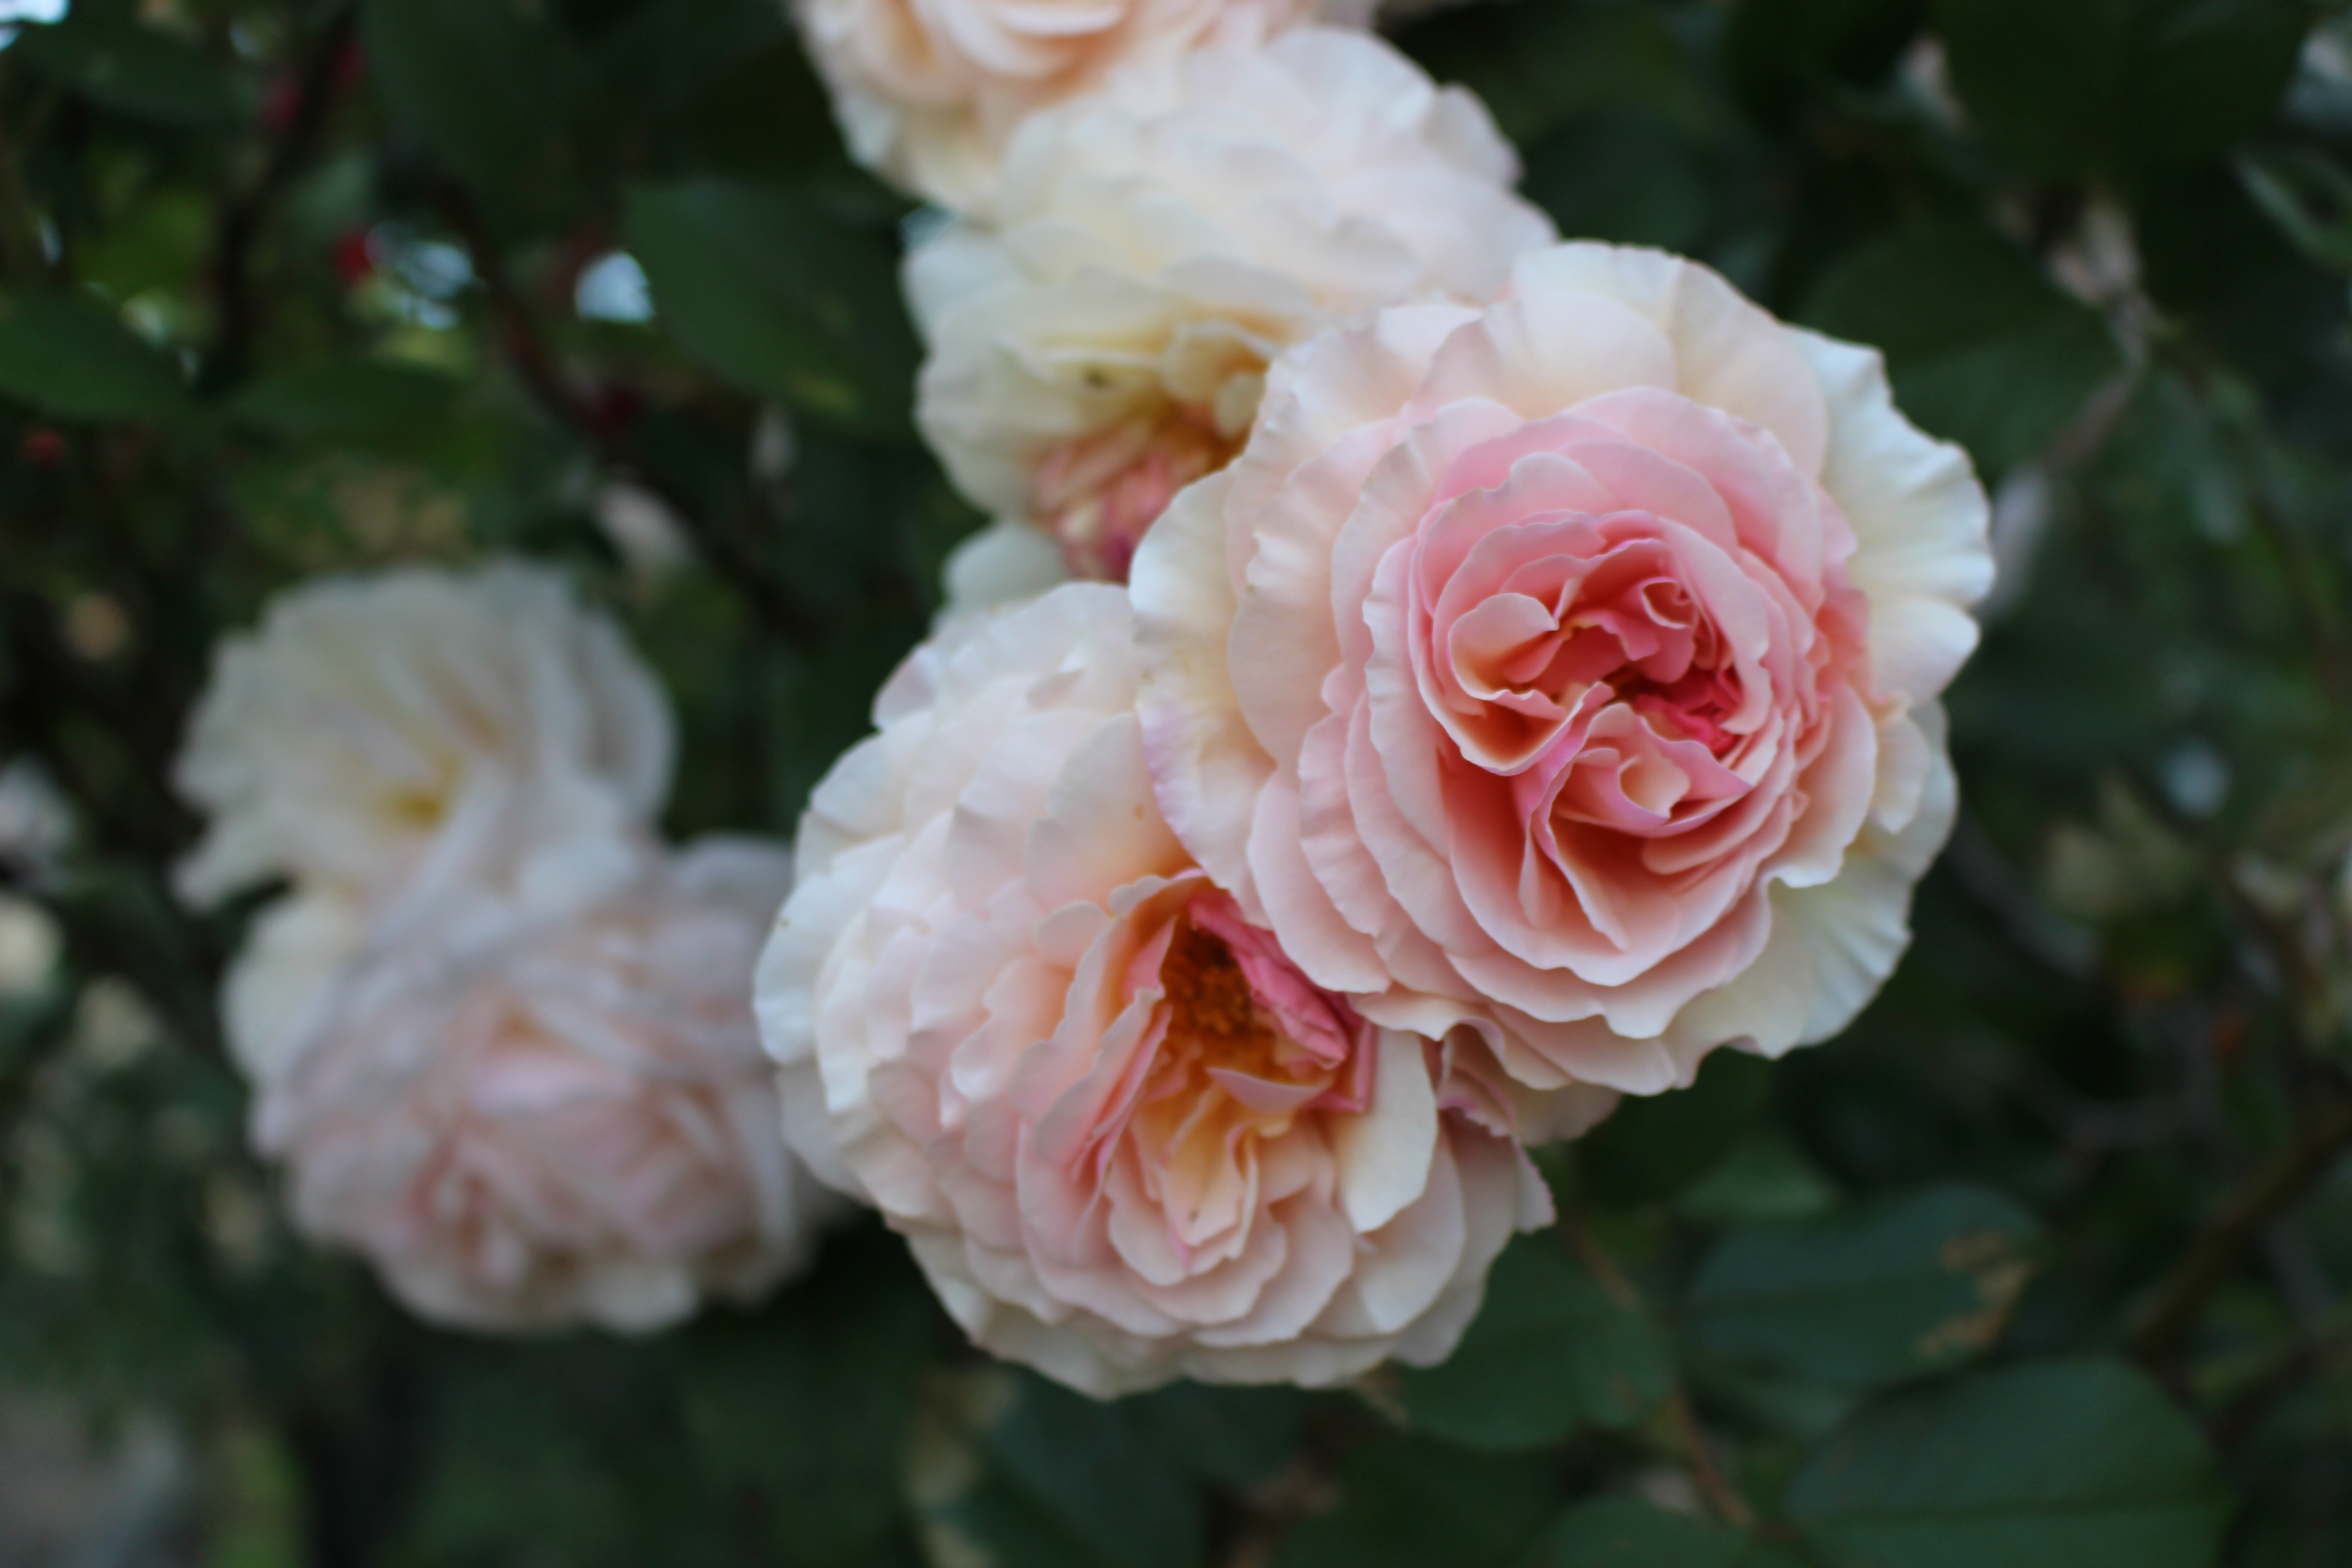 closeup photo of pink and white rose flowers during daytime